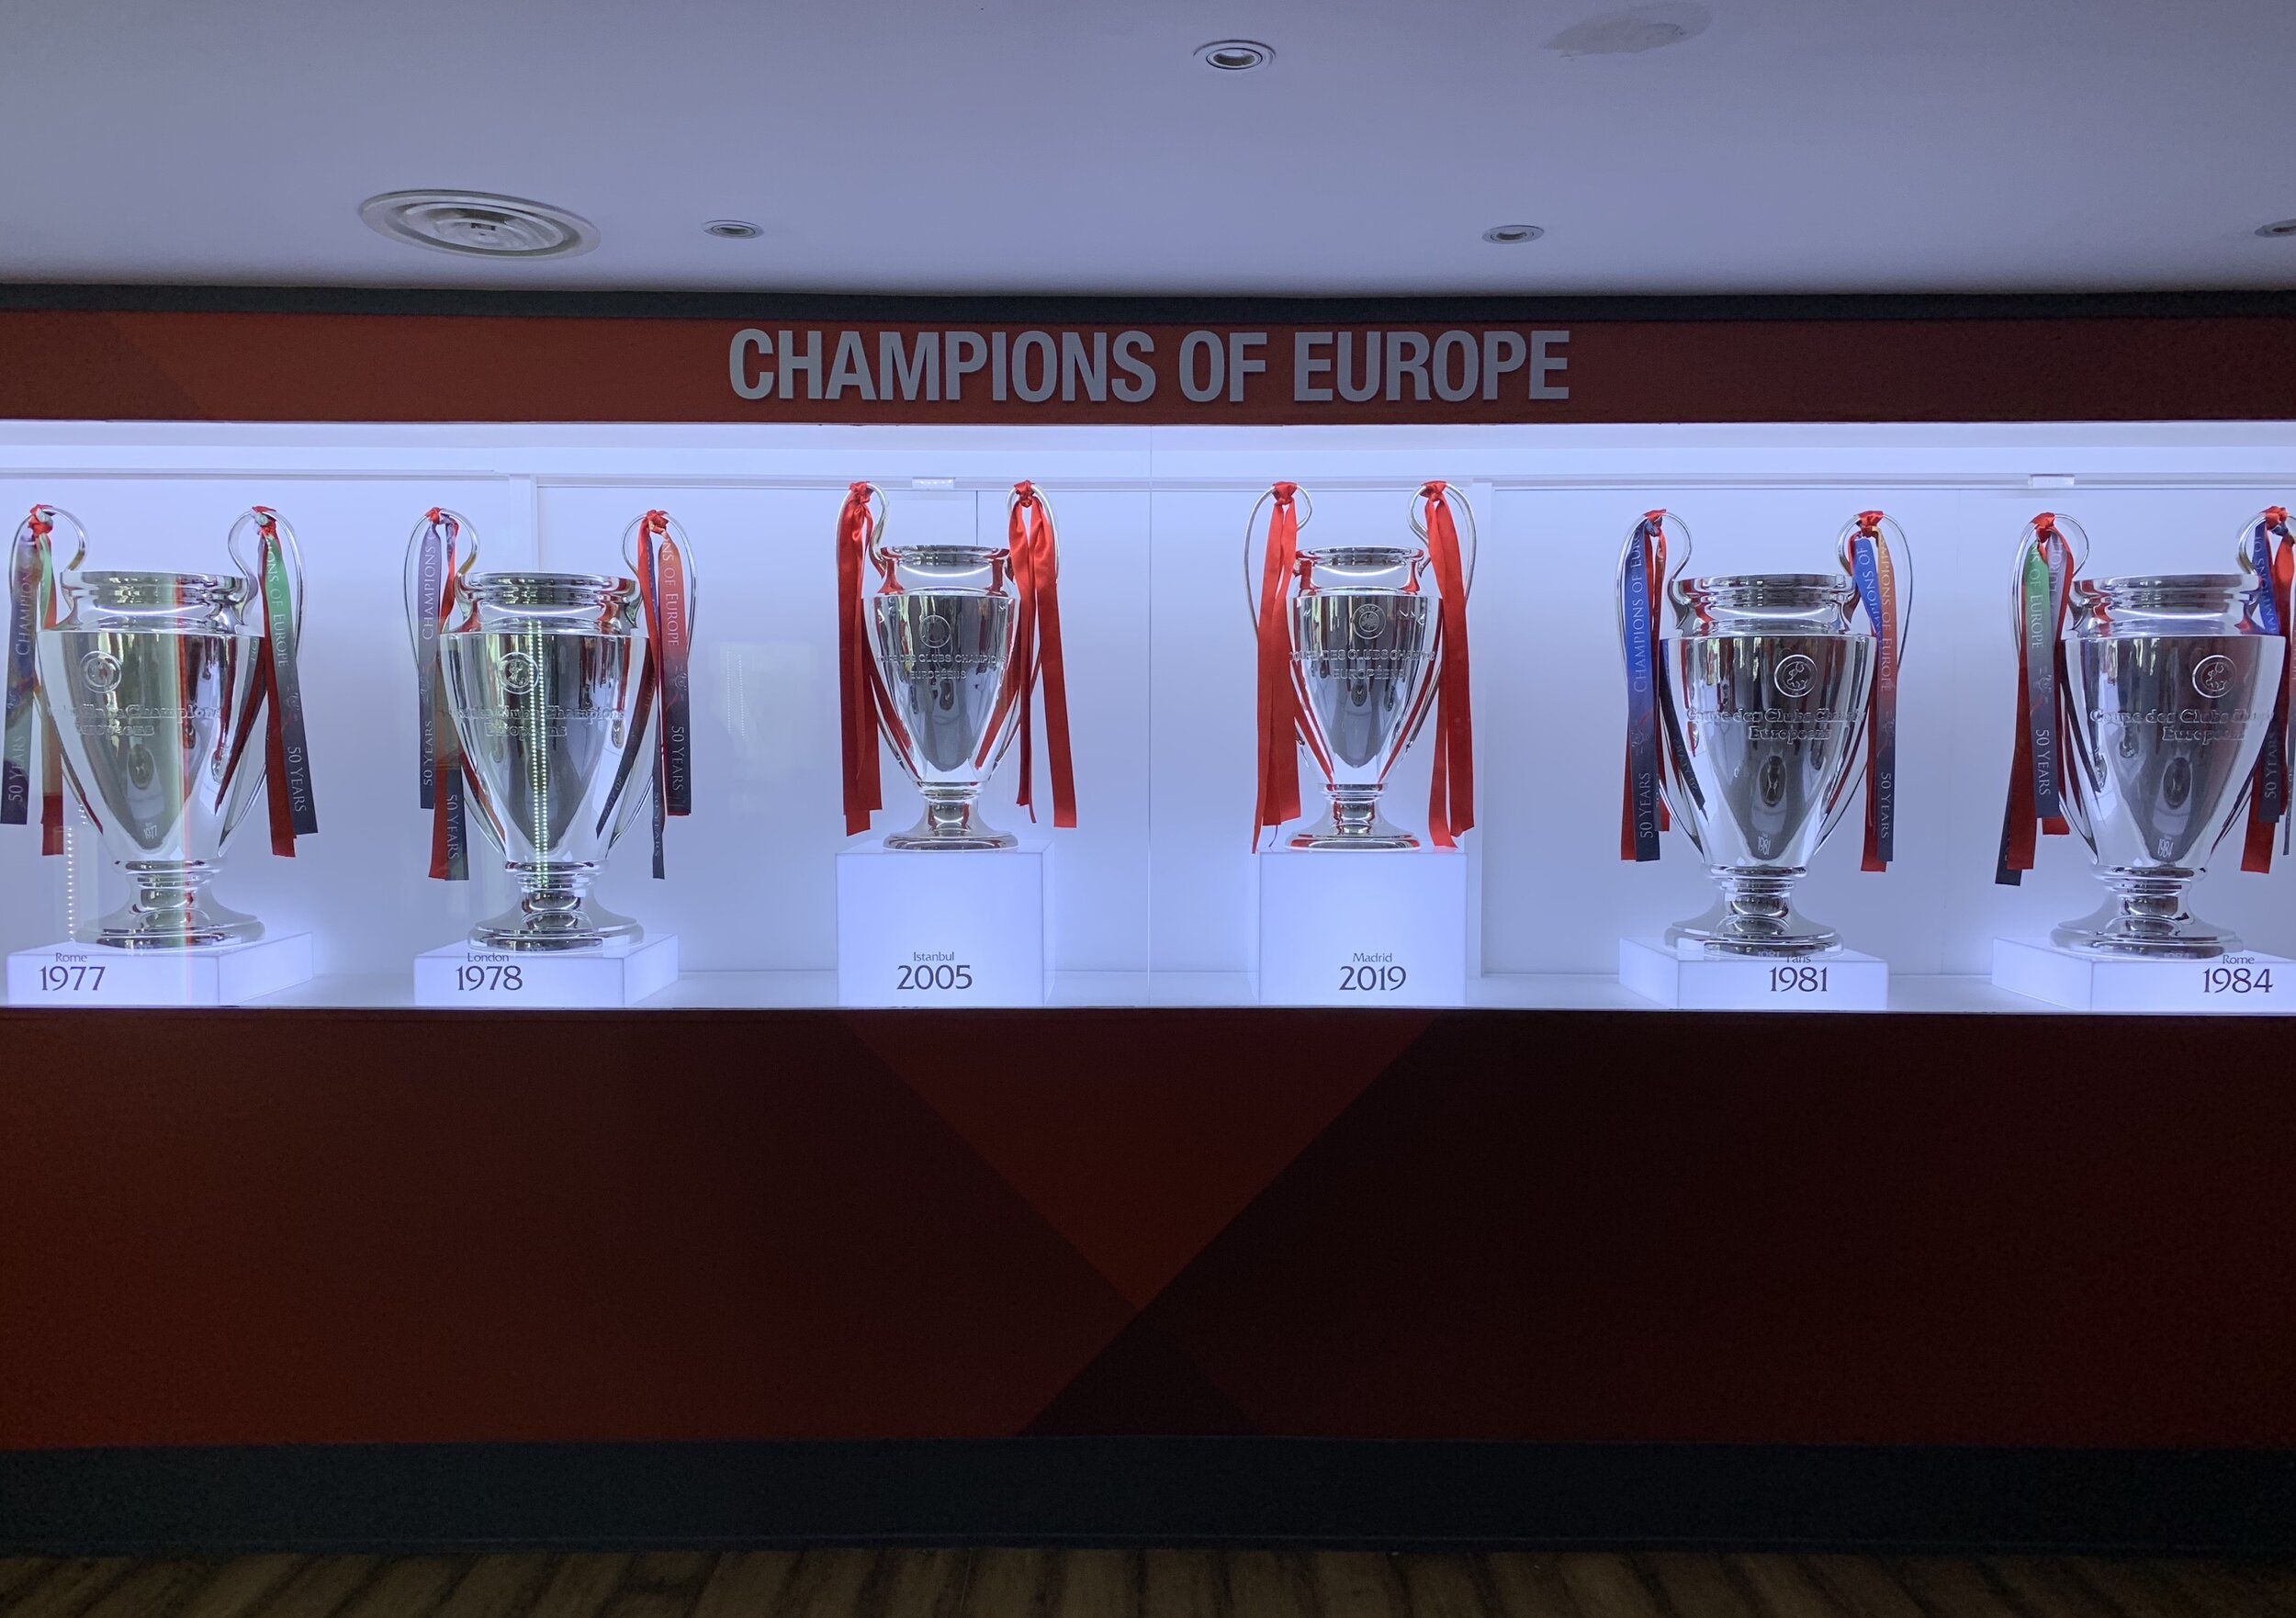 Champions of Europe, Times Six